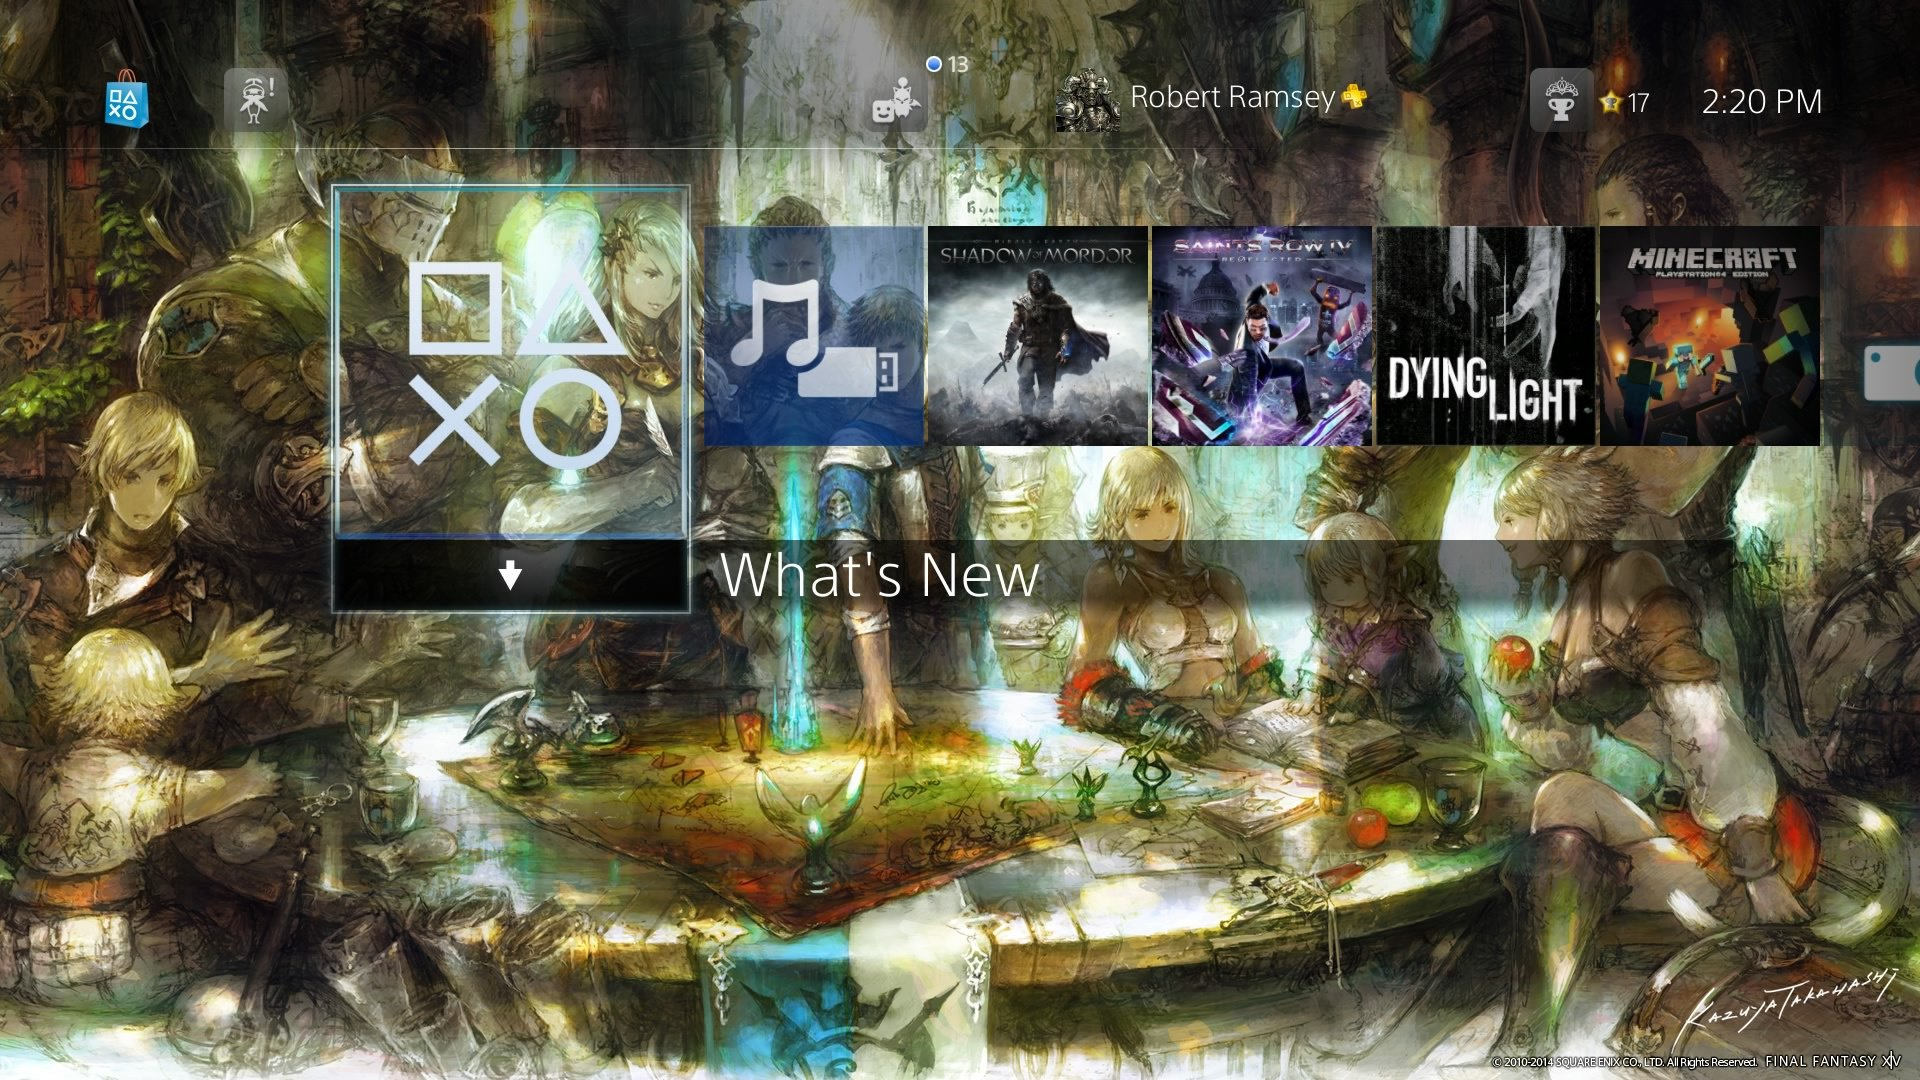 Final Fantasy Xivs Fantastic Ps4 Theme Is Now Available And Free In